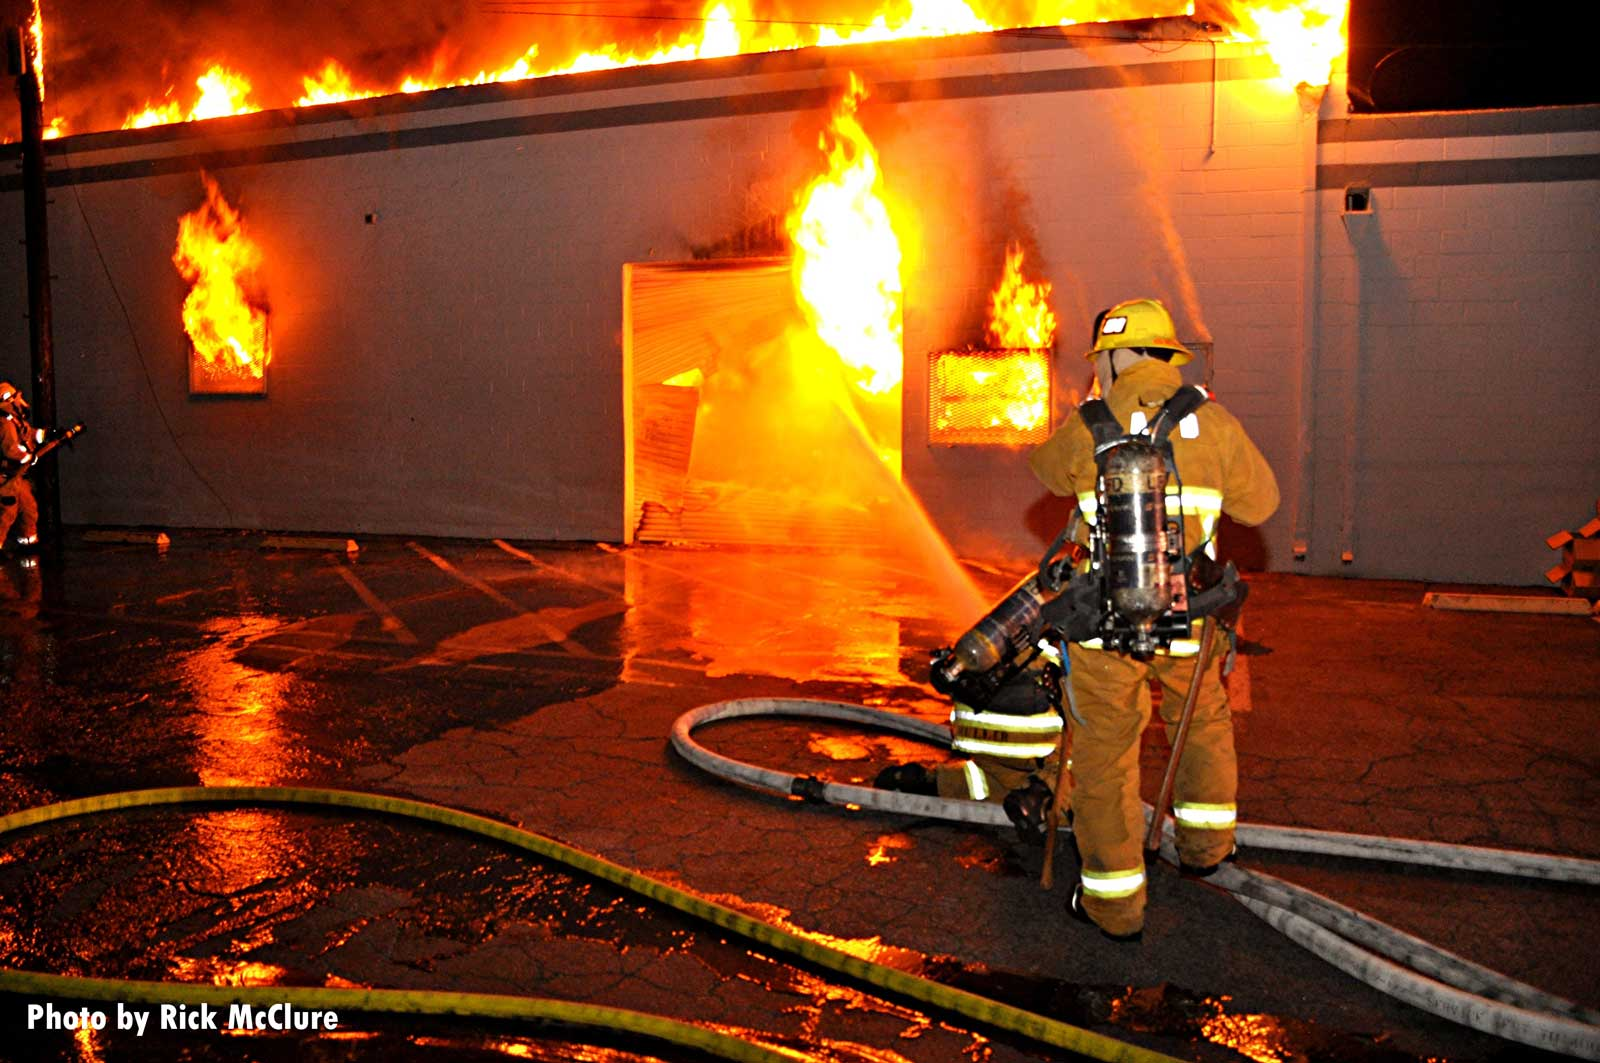 City of Los Angeles firefighter with flames shooting through a building in the background